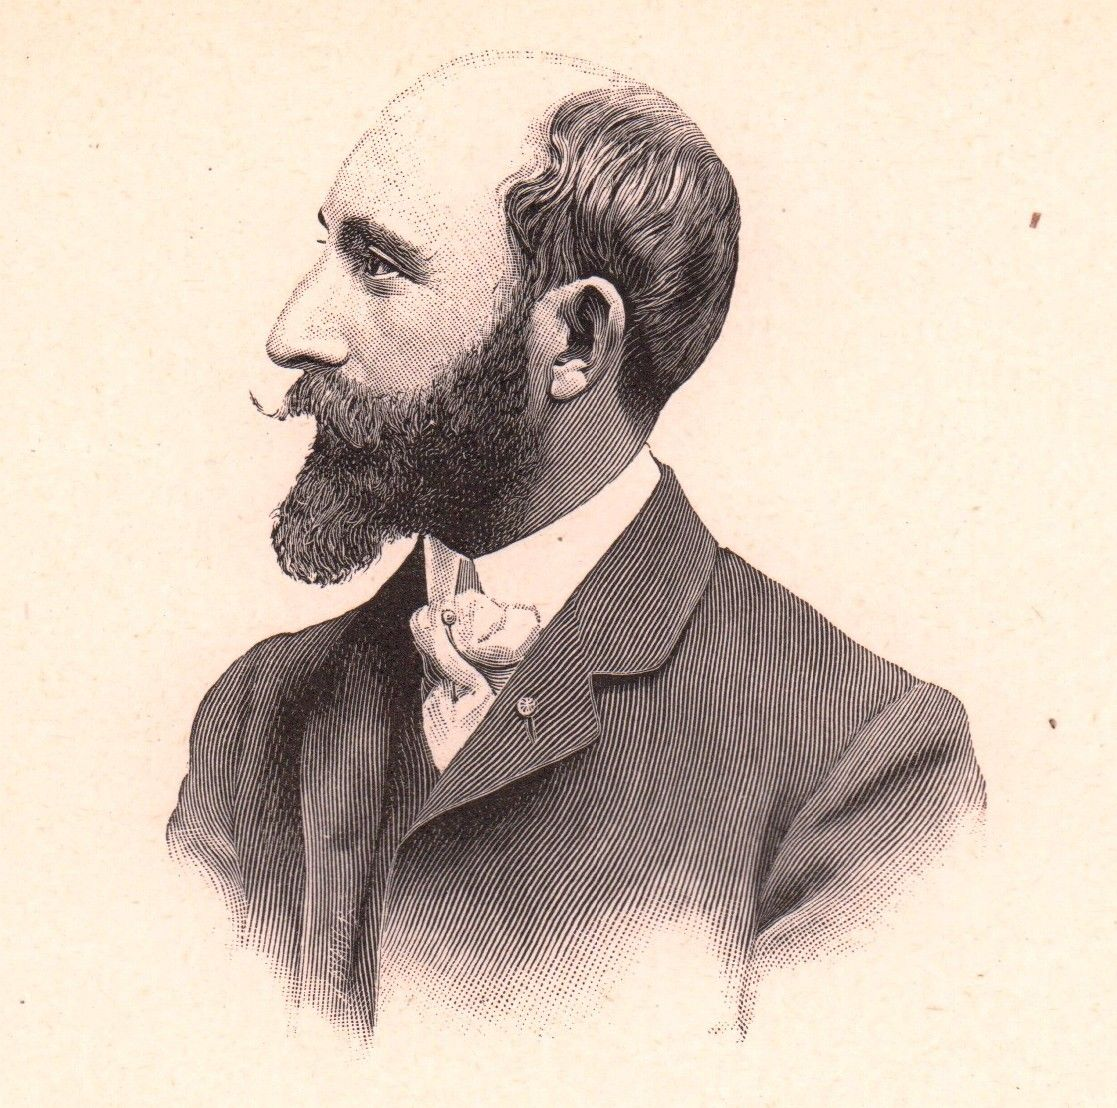 image of Jules-Alexandre Grün from wikipedia